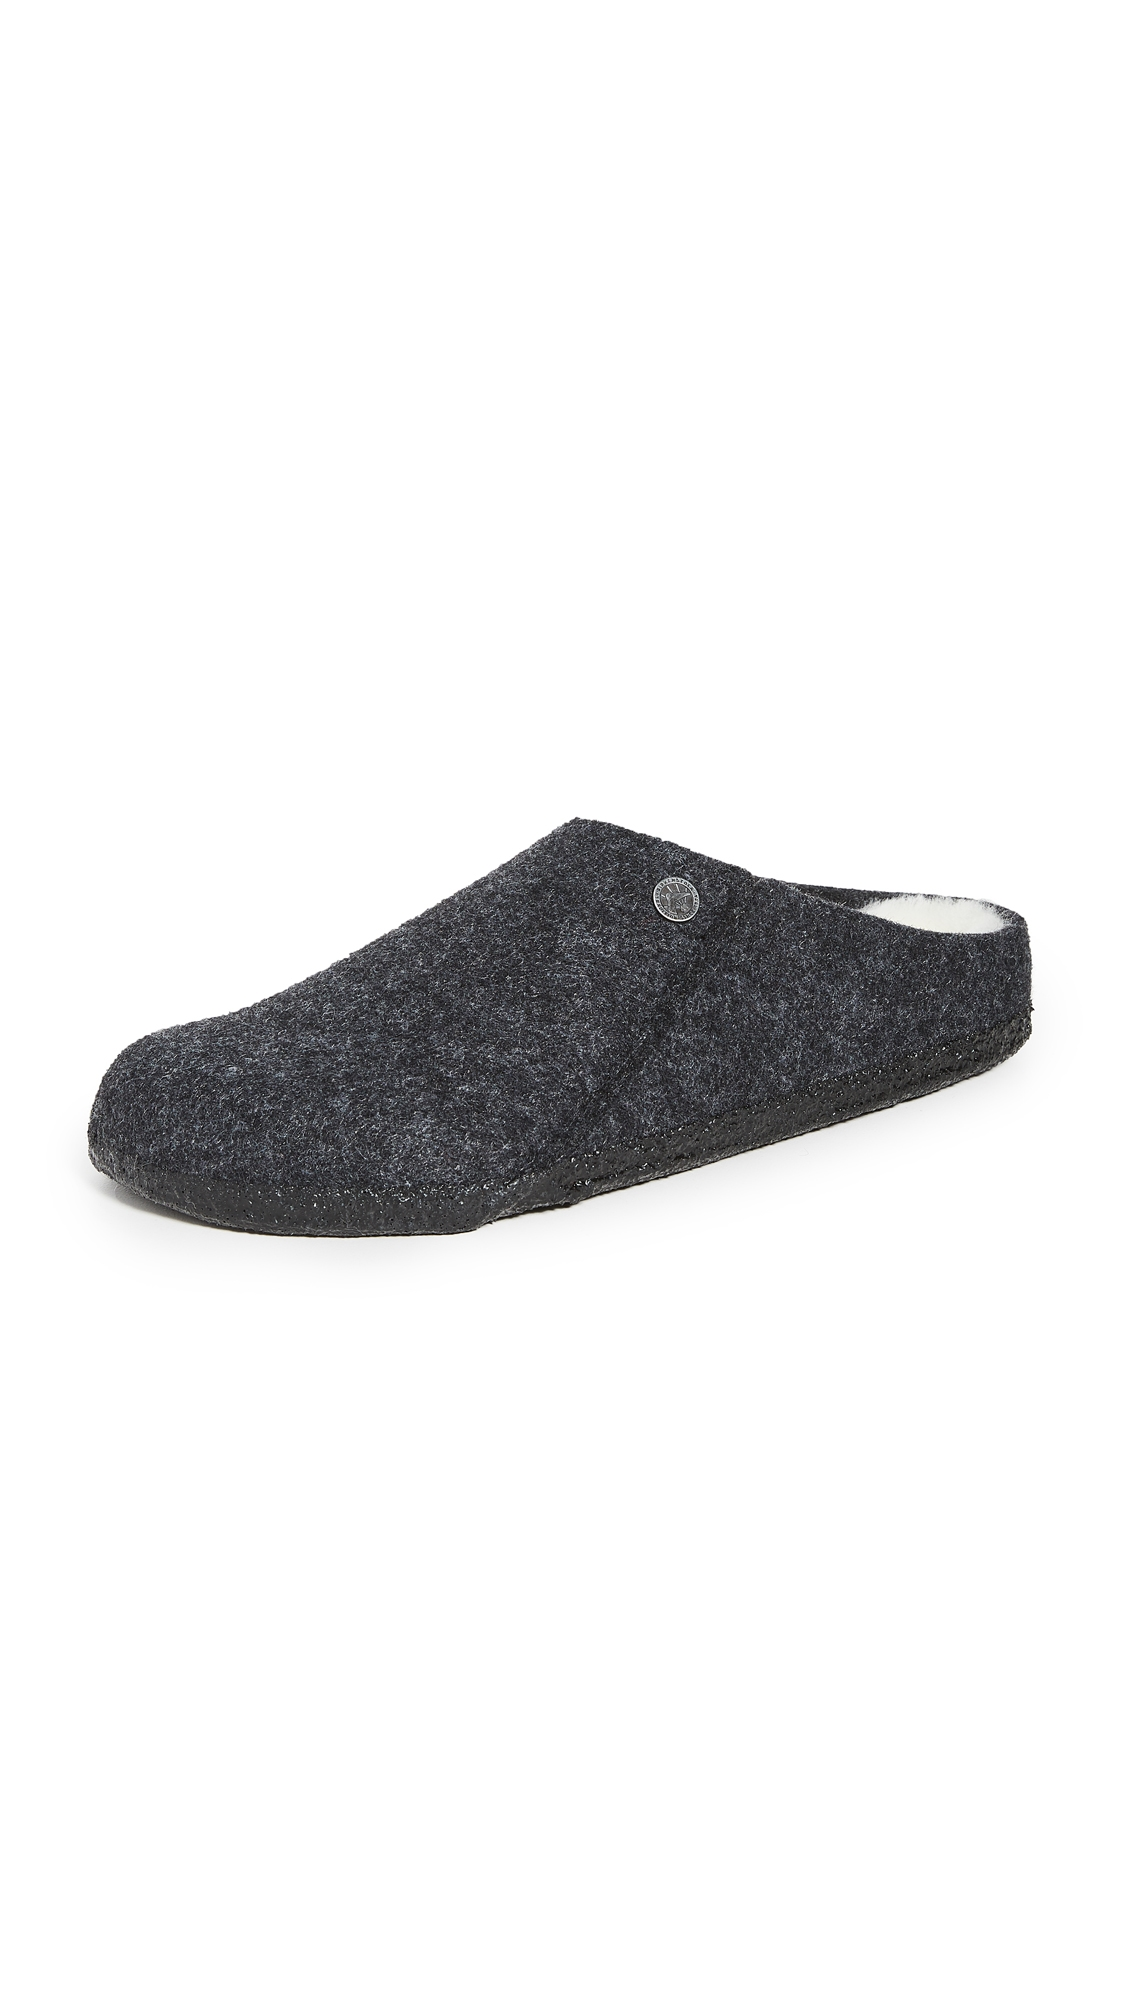 Birkenstock Slippers ZERMATT SLIPPERS